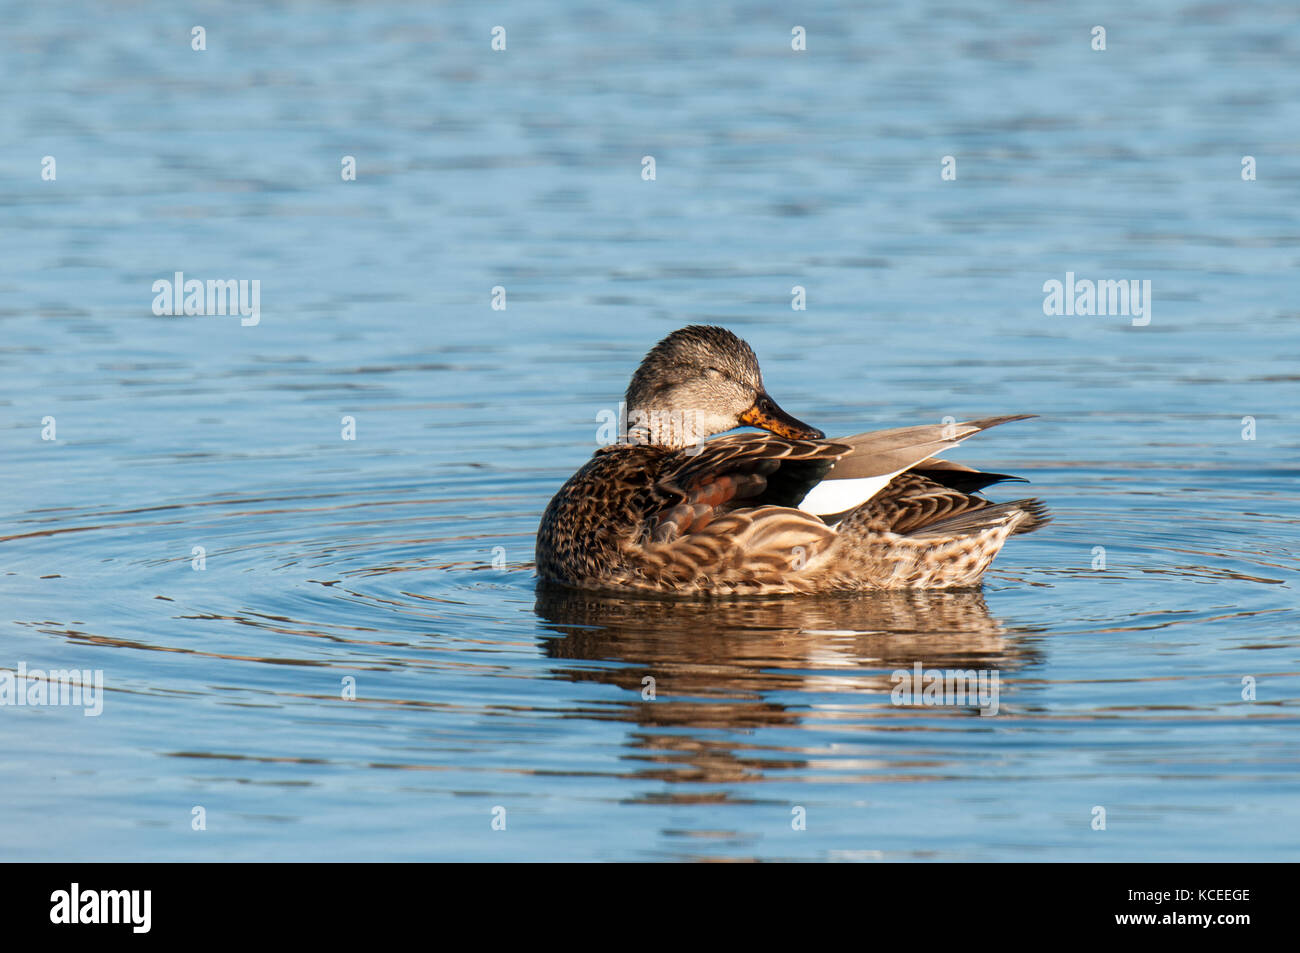 An adult female gadwall (Anas strepera) preening on a lake at RSPB Fairburn Ings, Castleford, West Yorkshire. February. - Stock Image